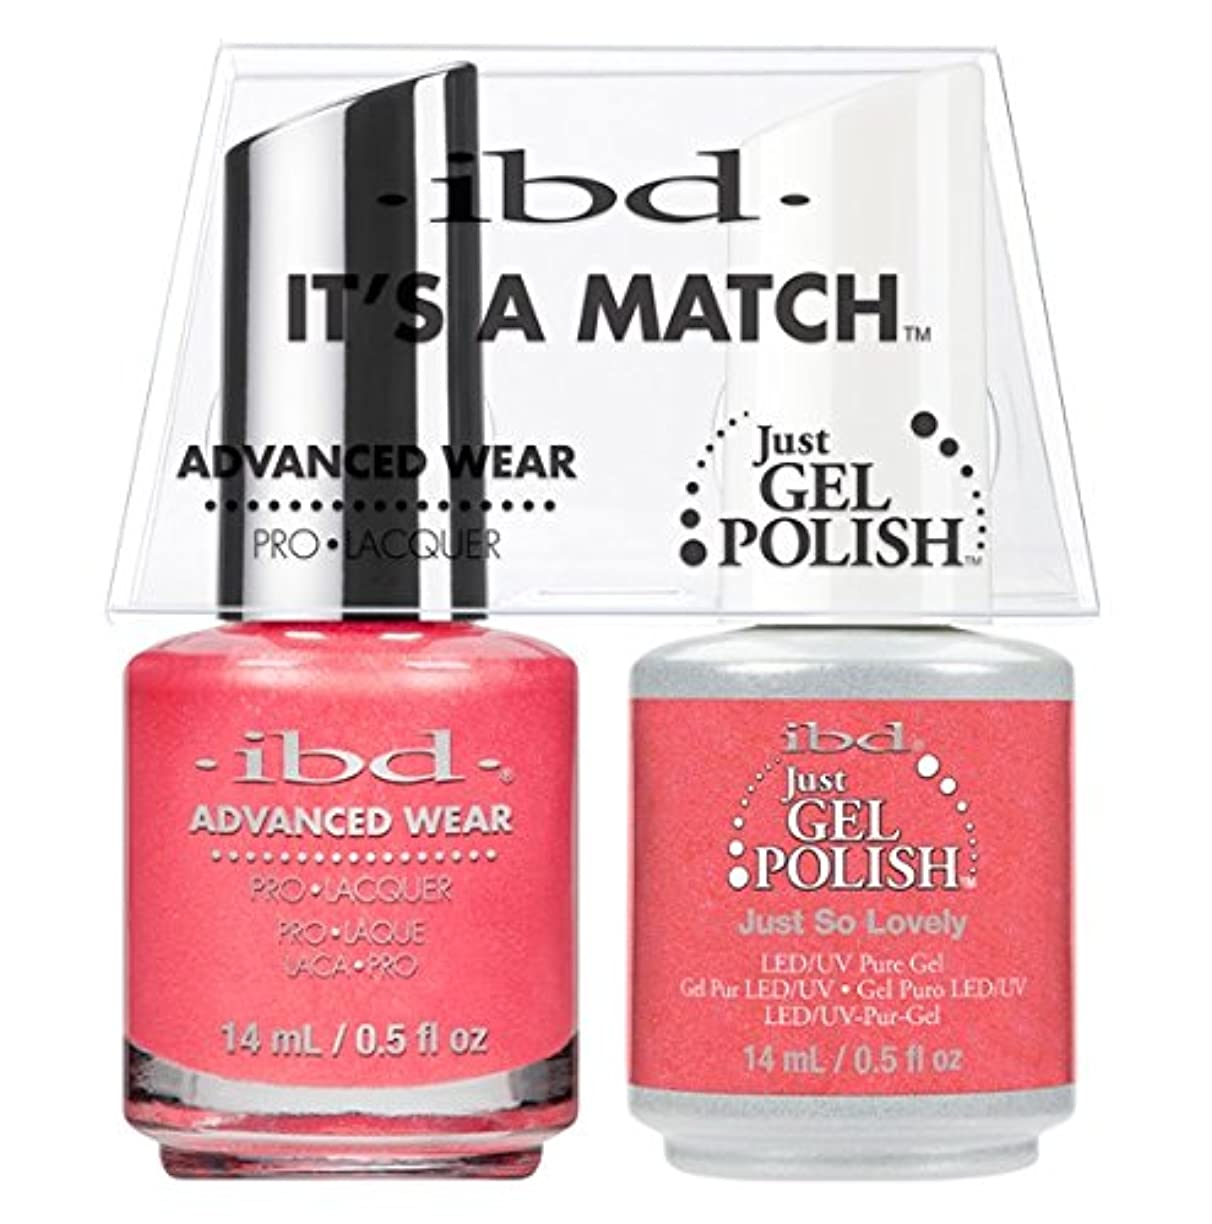 ibd - It's A Match -Duo Pack- Just So Lovely - 14 mL / 0.5 oz Each